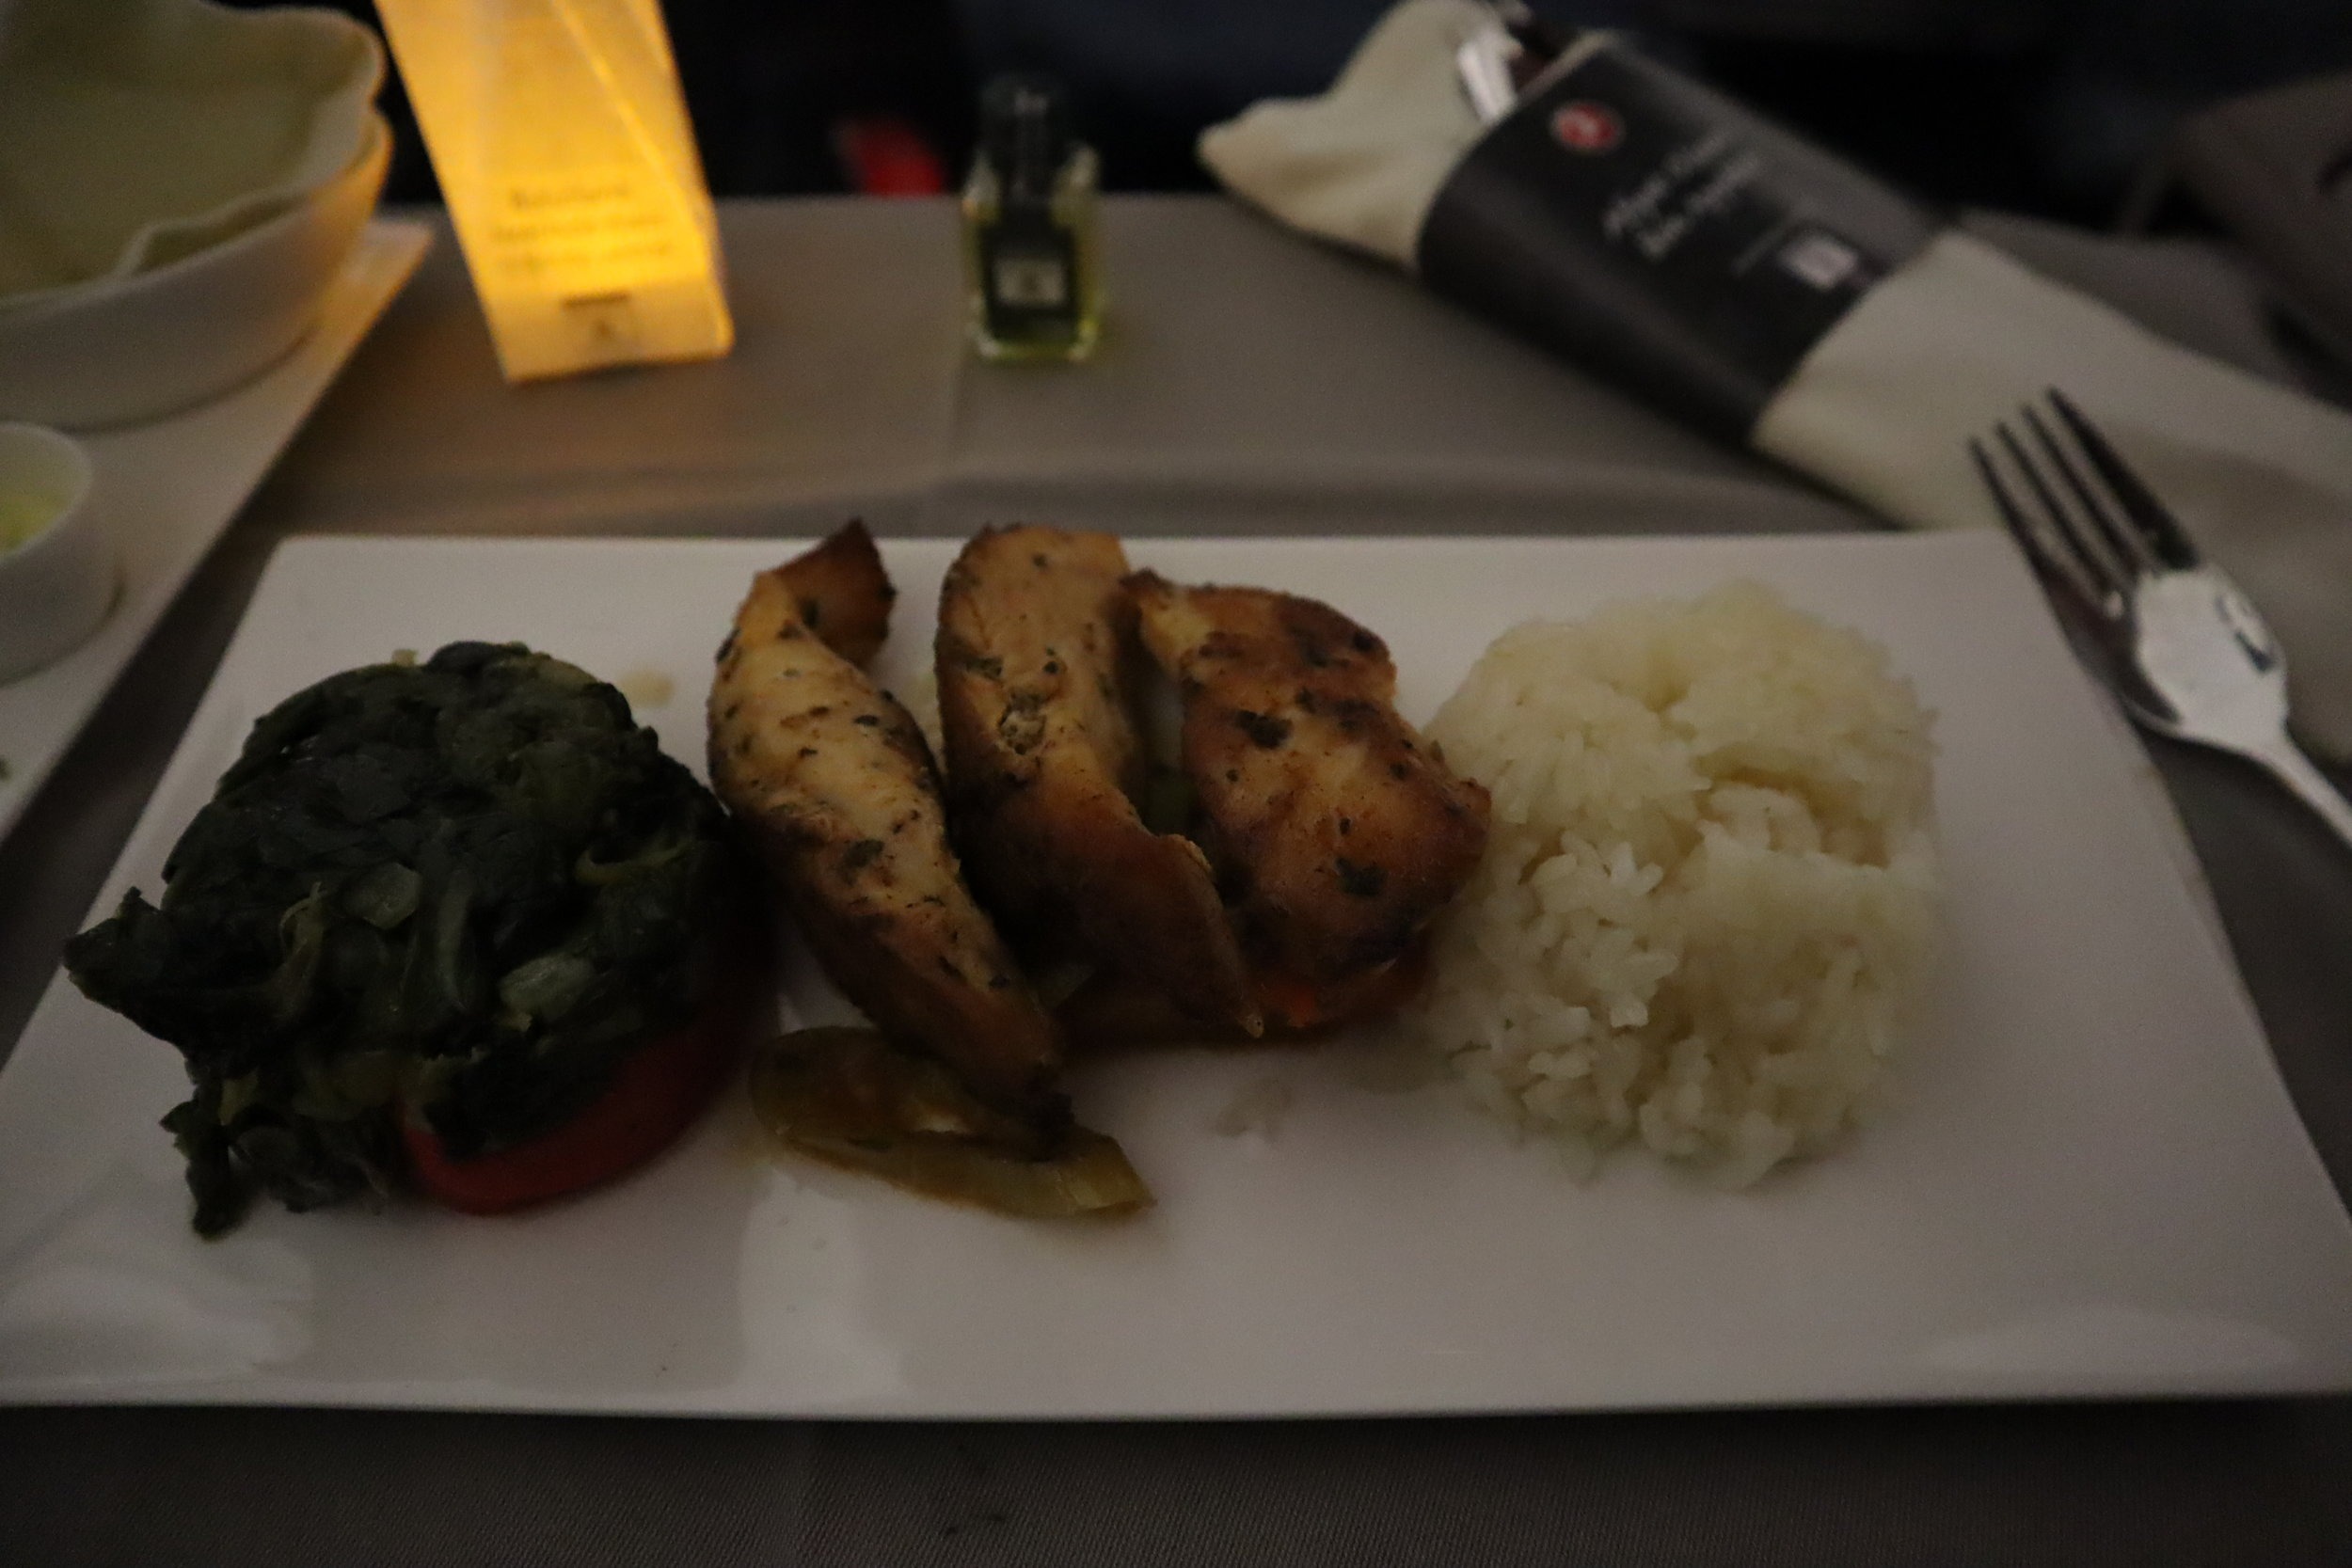 Turkish Airlines A330 business class – Herb-grilled baby chicken